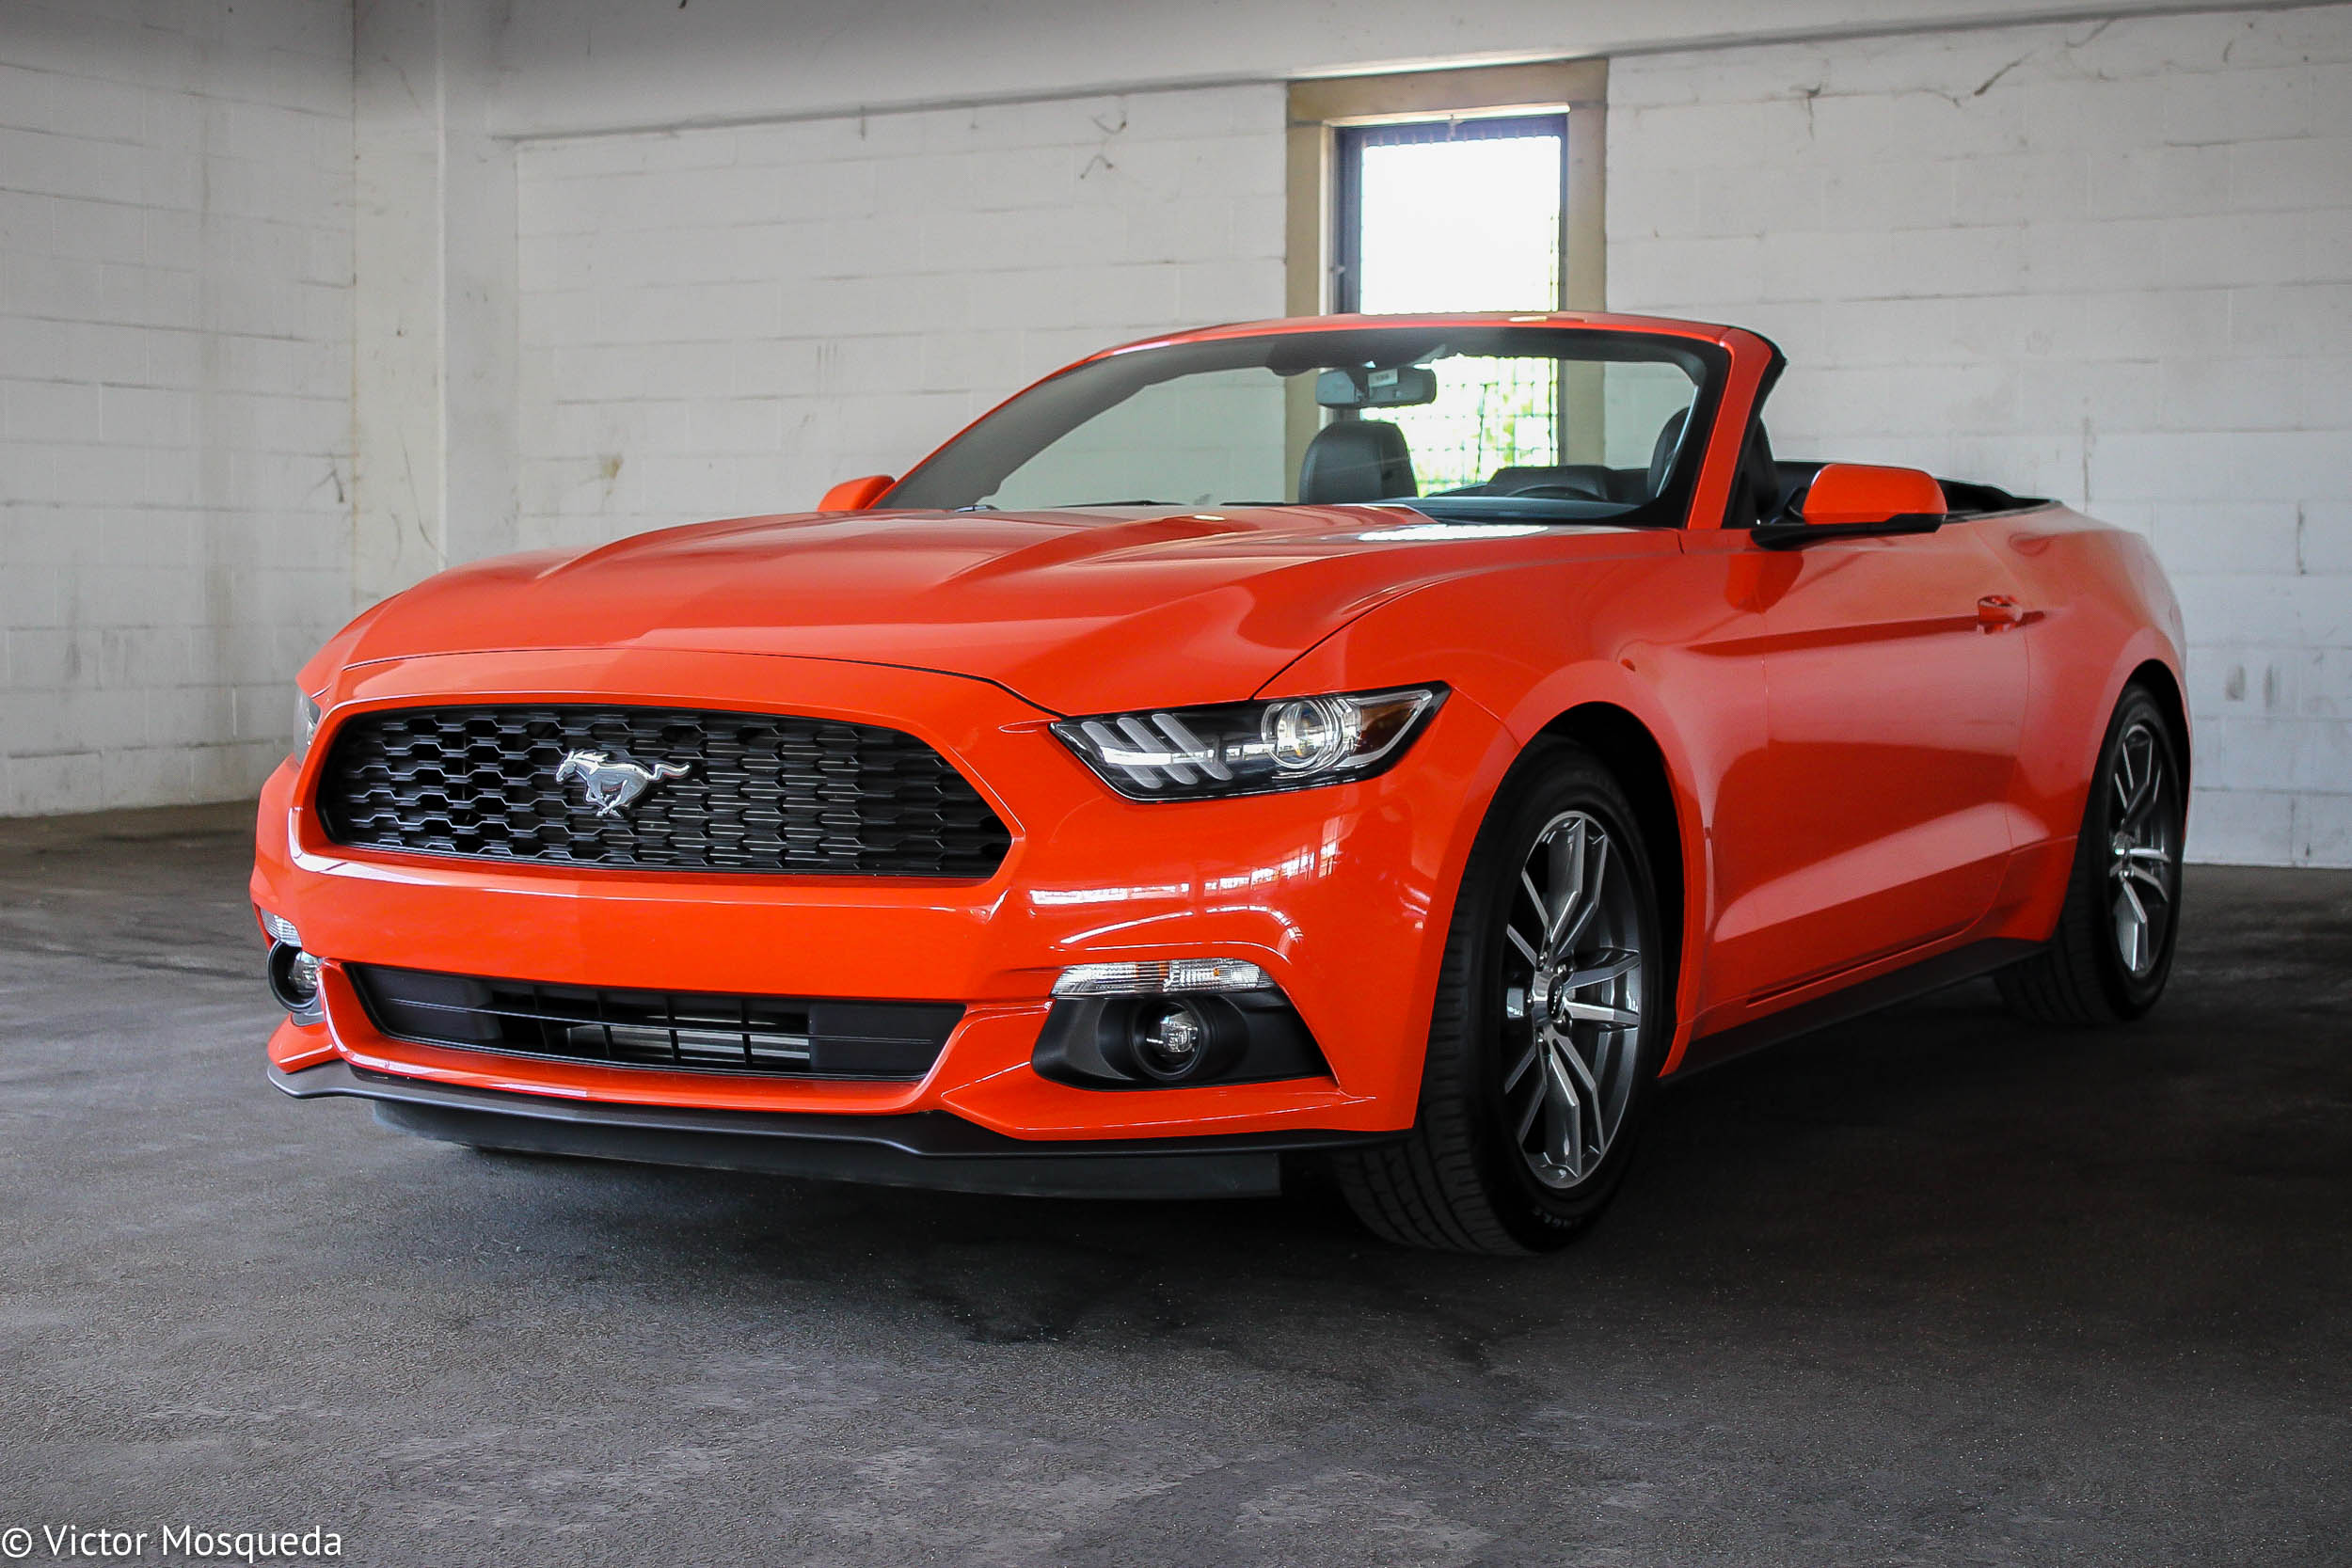 2015 ford mustang convertible 2 3 liter ecoboost carfanatics blog. Black Bedroom Furniture Sets. Home Design Ideas